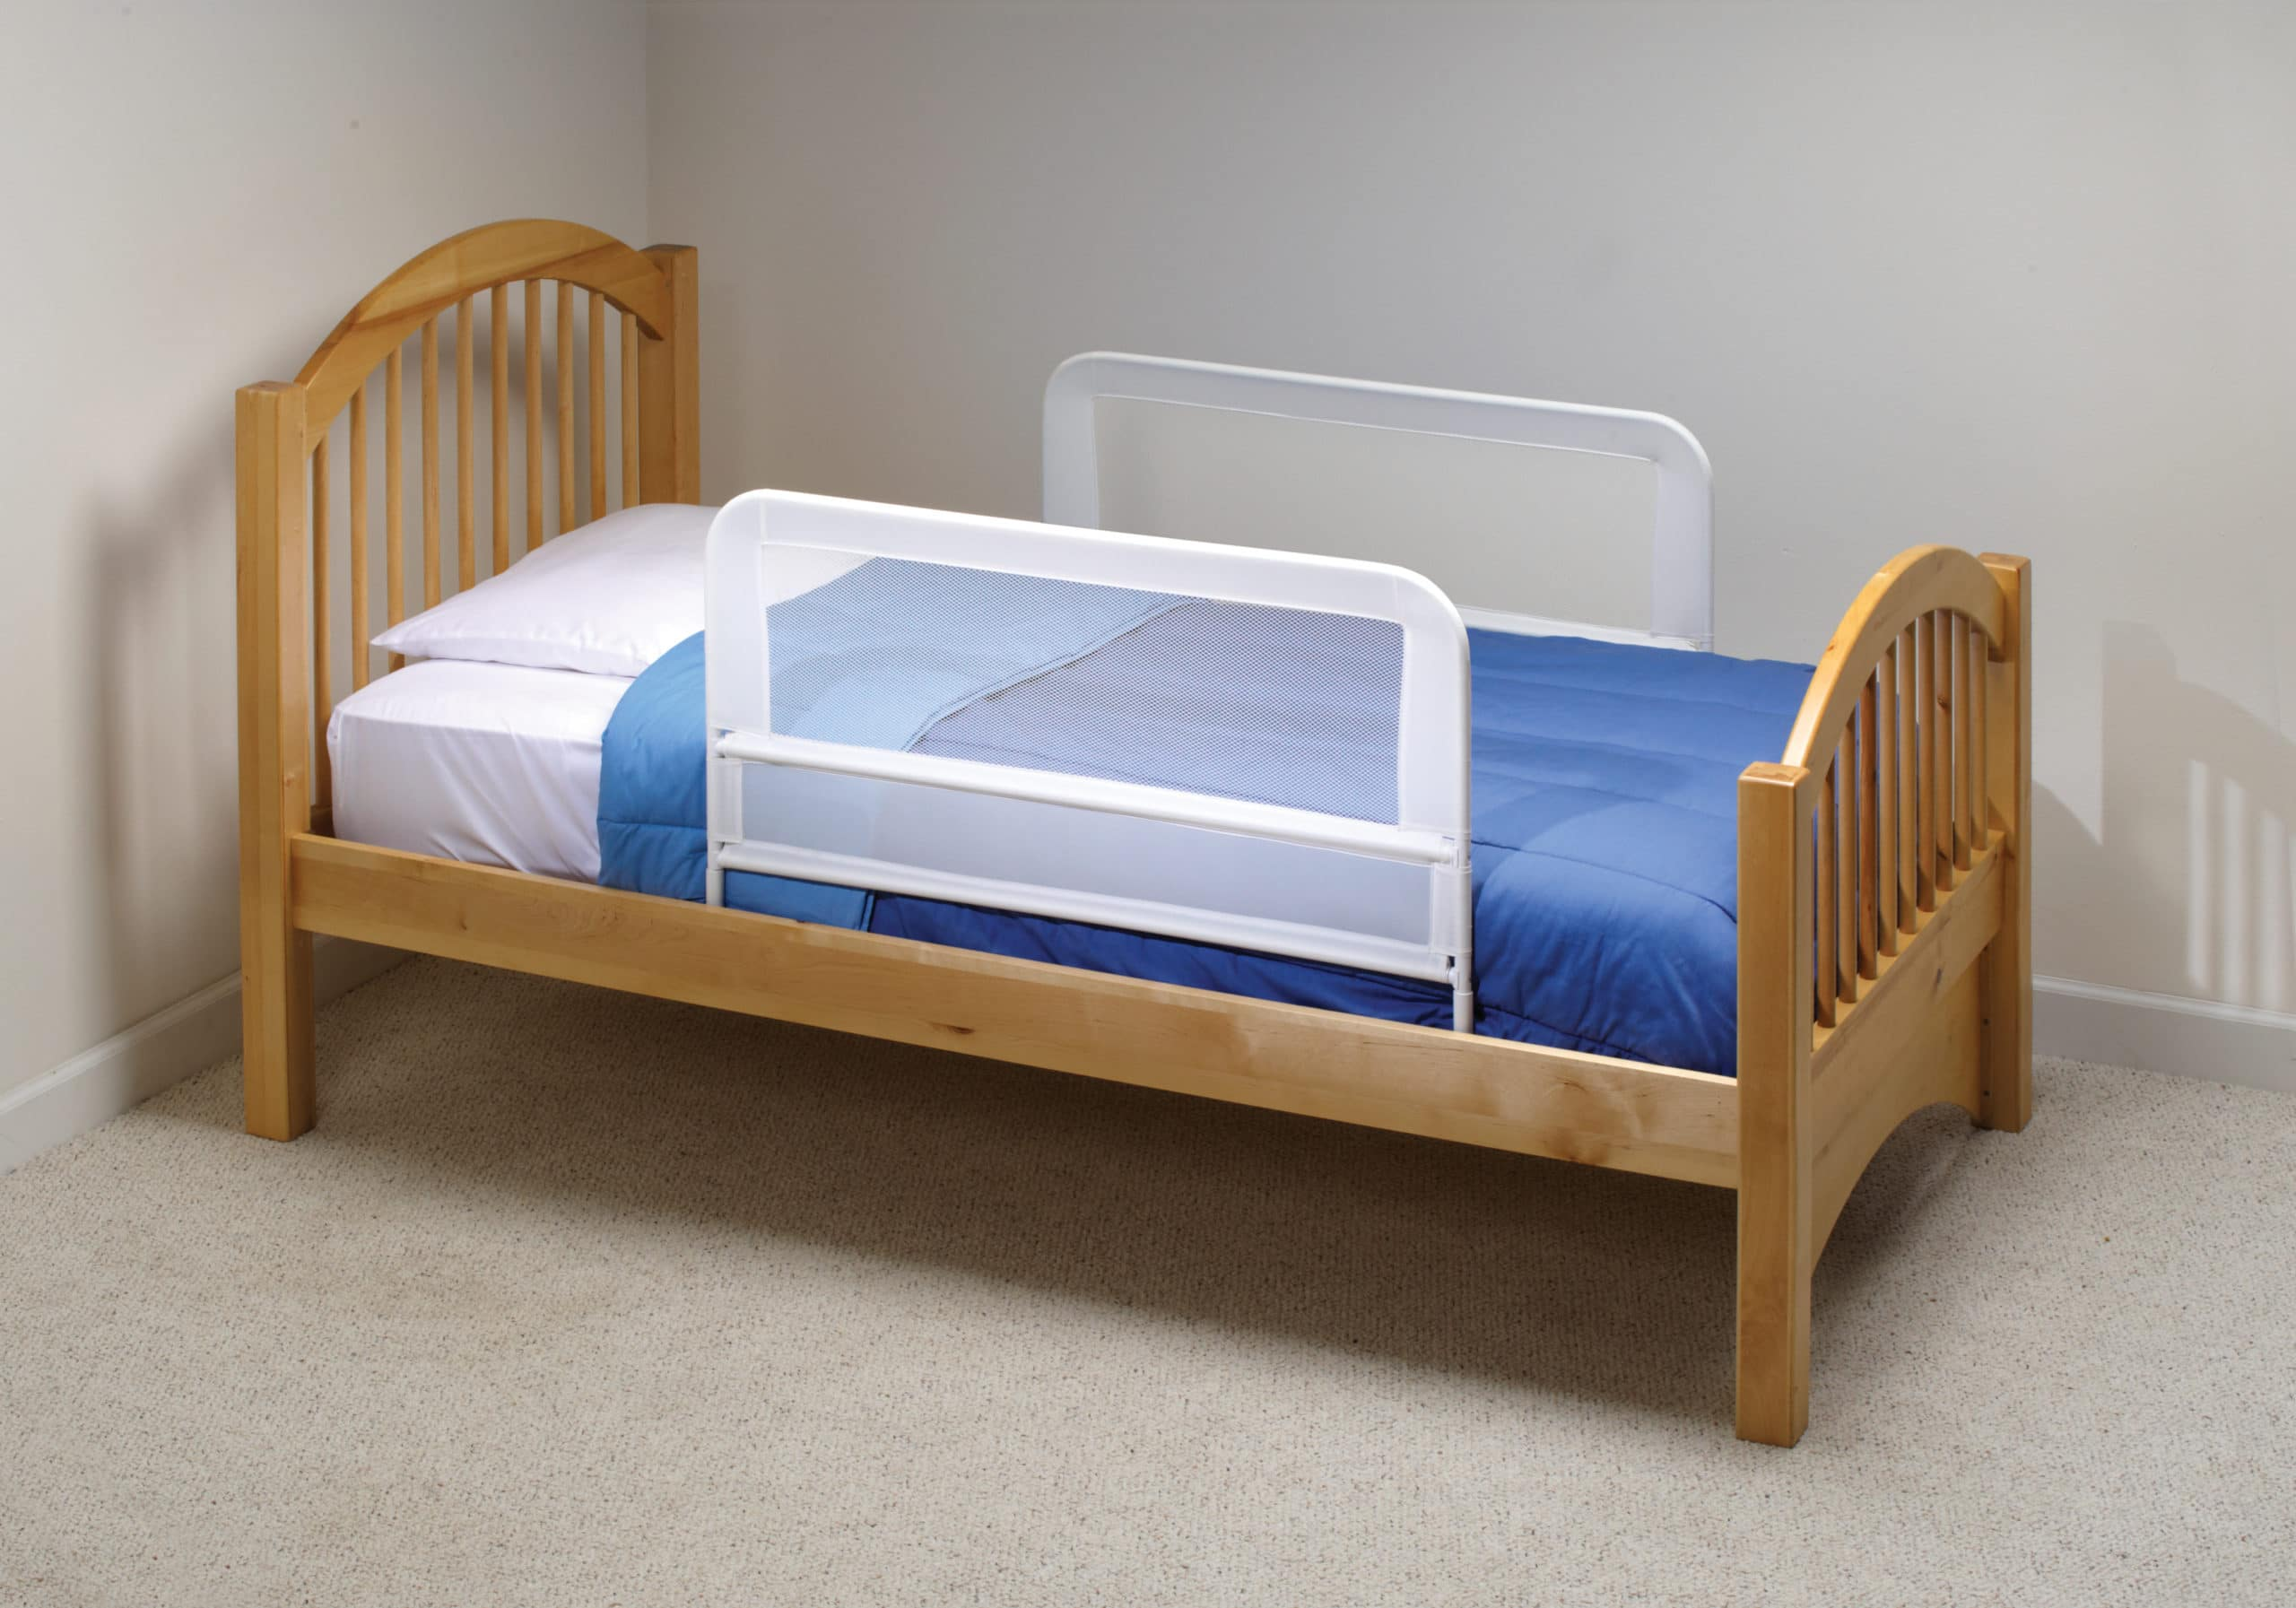 Childrens Mesh Bed Rail Telescopic Double Pack BR202 TwoRails 2 23